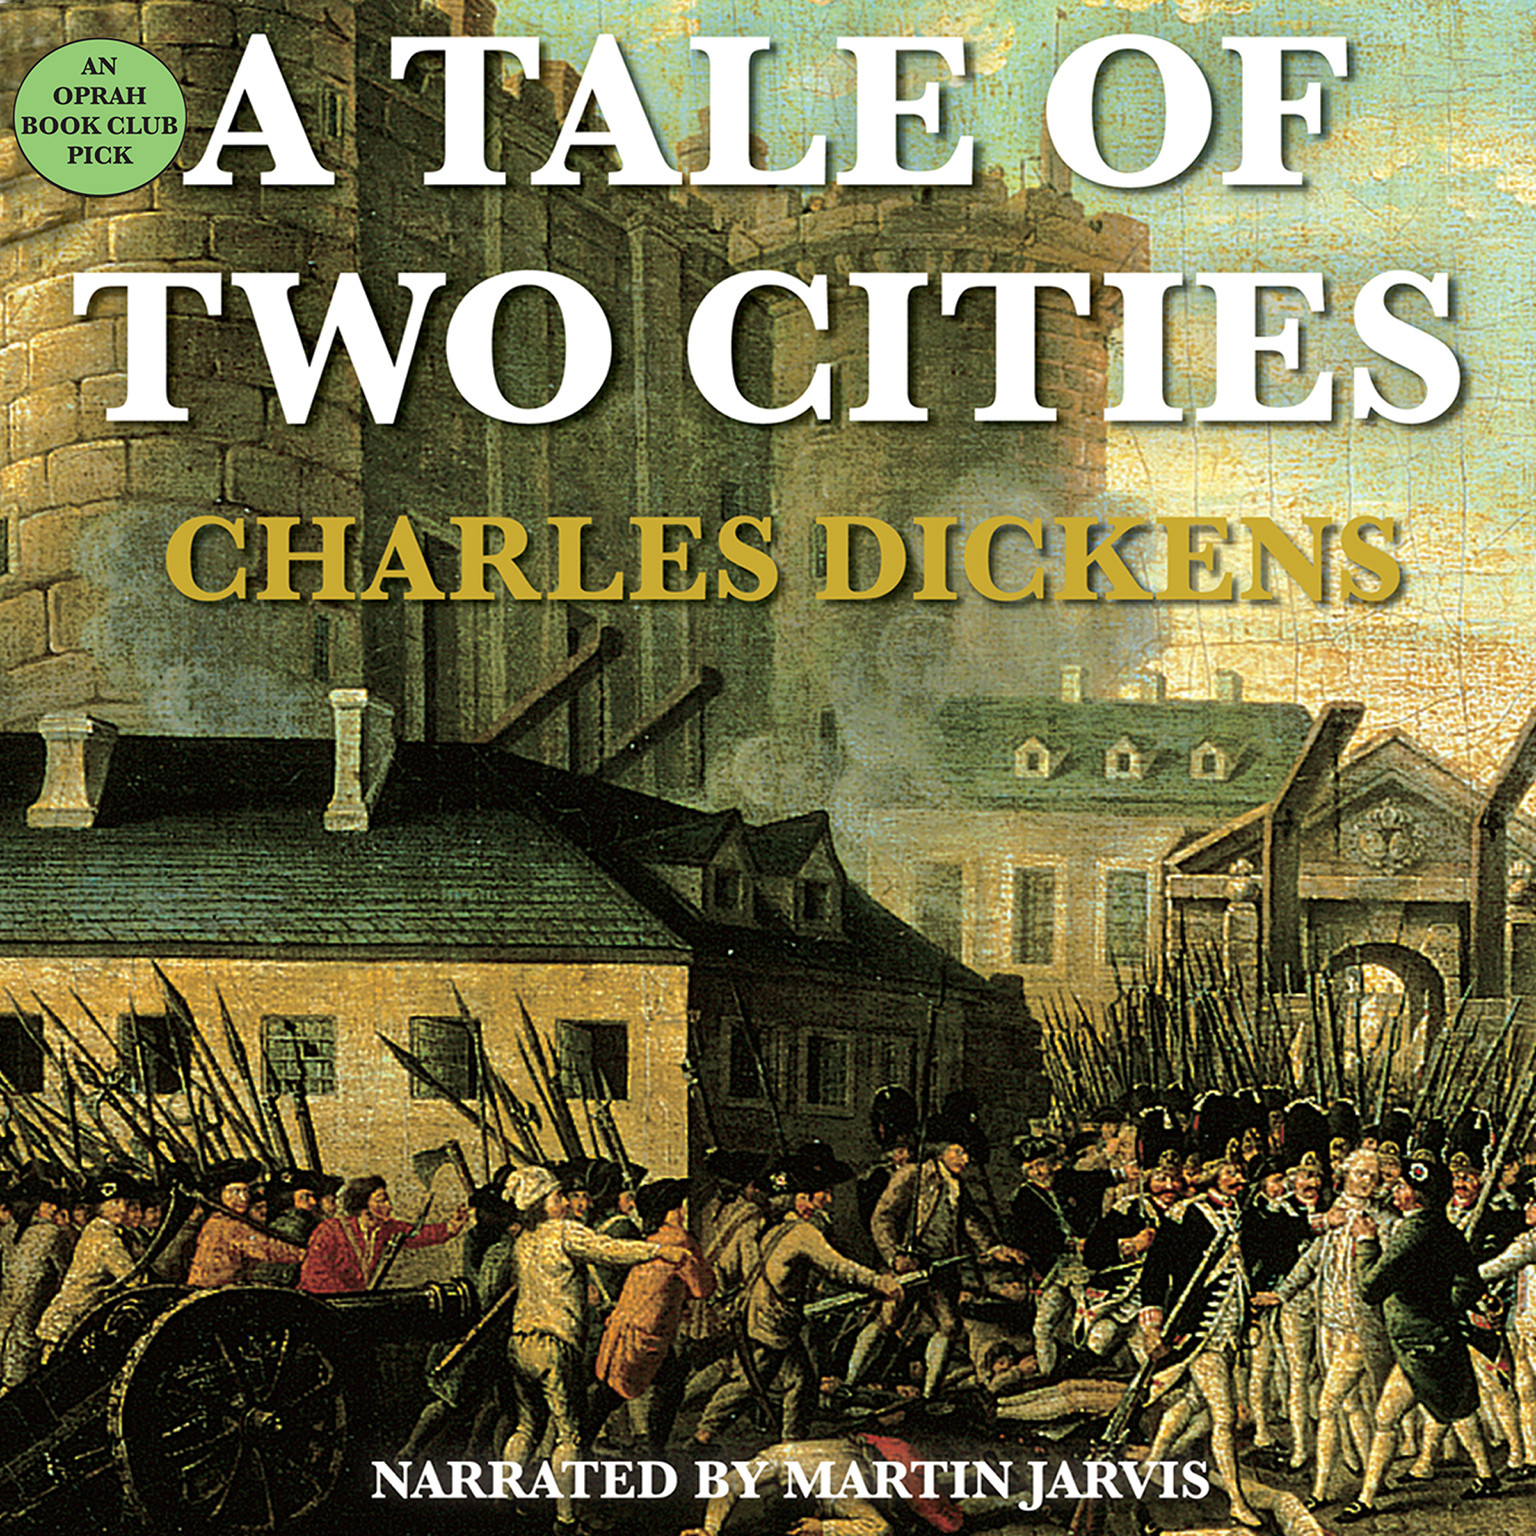 tale of two cities adversary A tale of two cities charles dickens illustrated by rene ben sussan avon connecticut: heritage press the heritage press is known for its attractive and affordable reprints of special classic literatur.